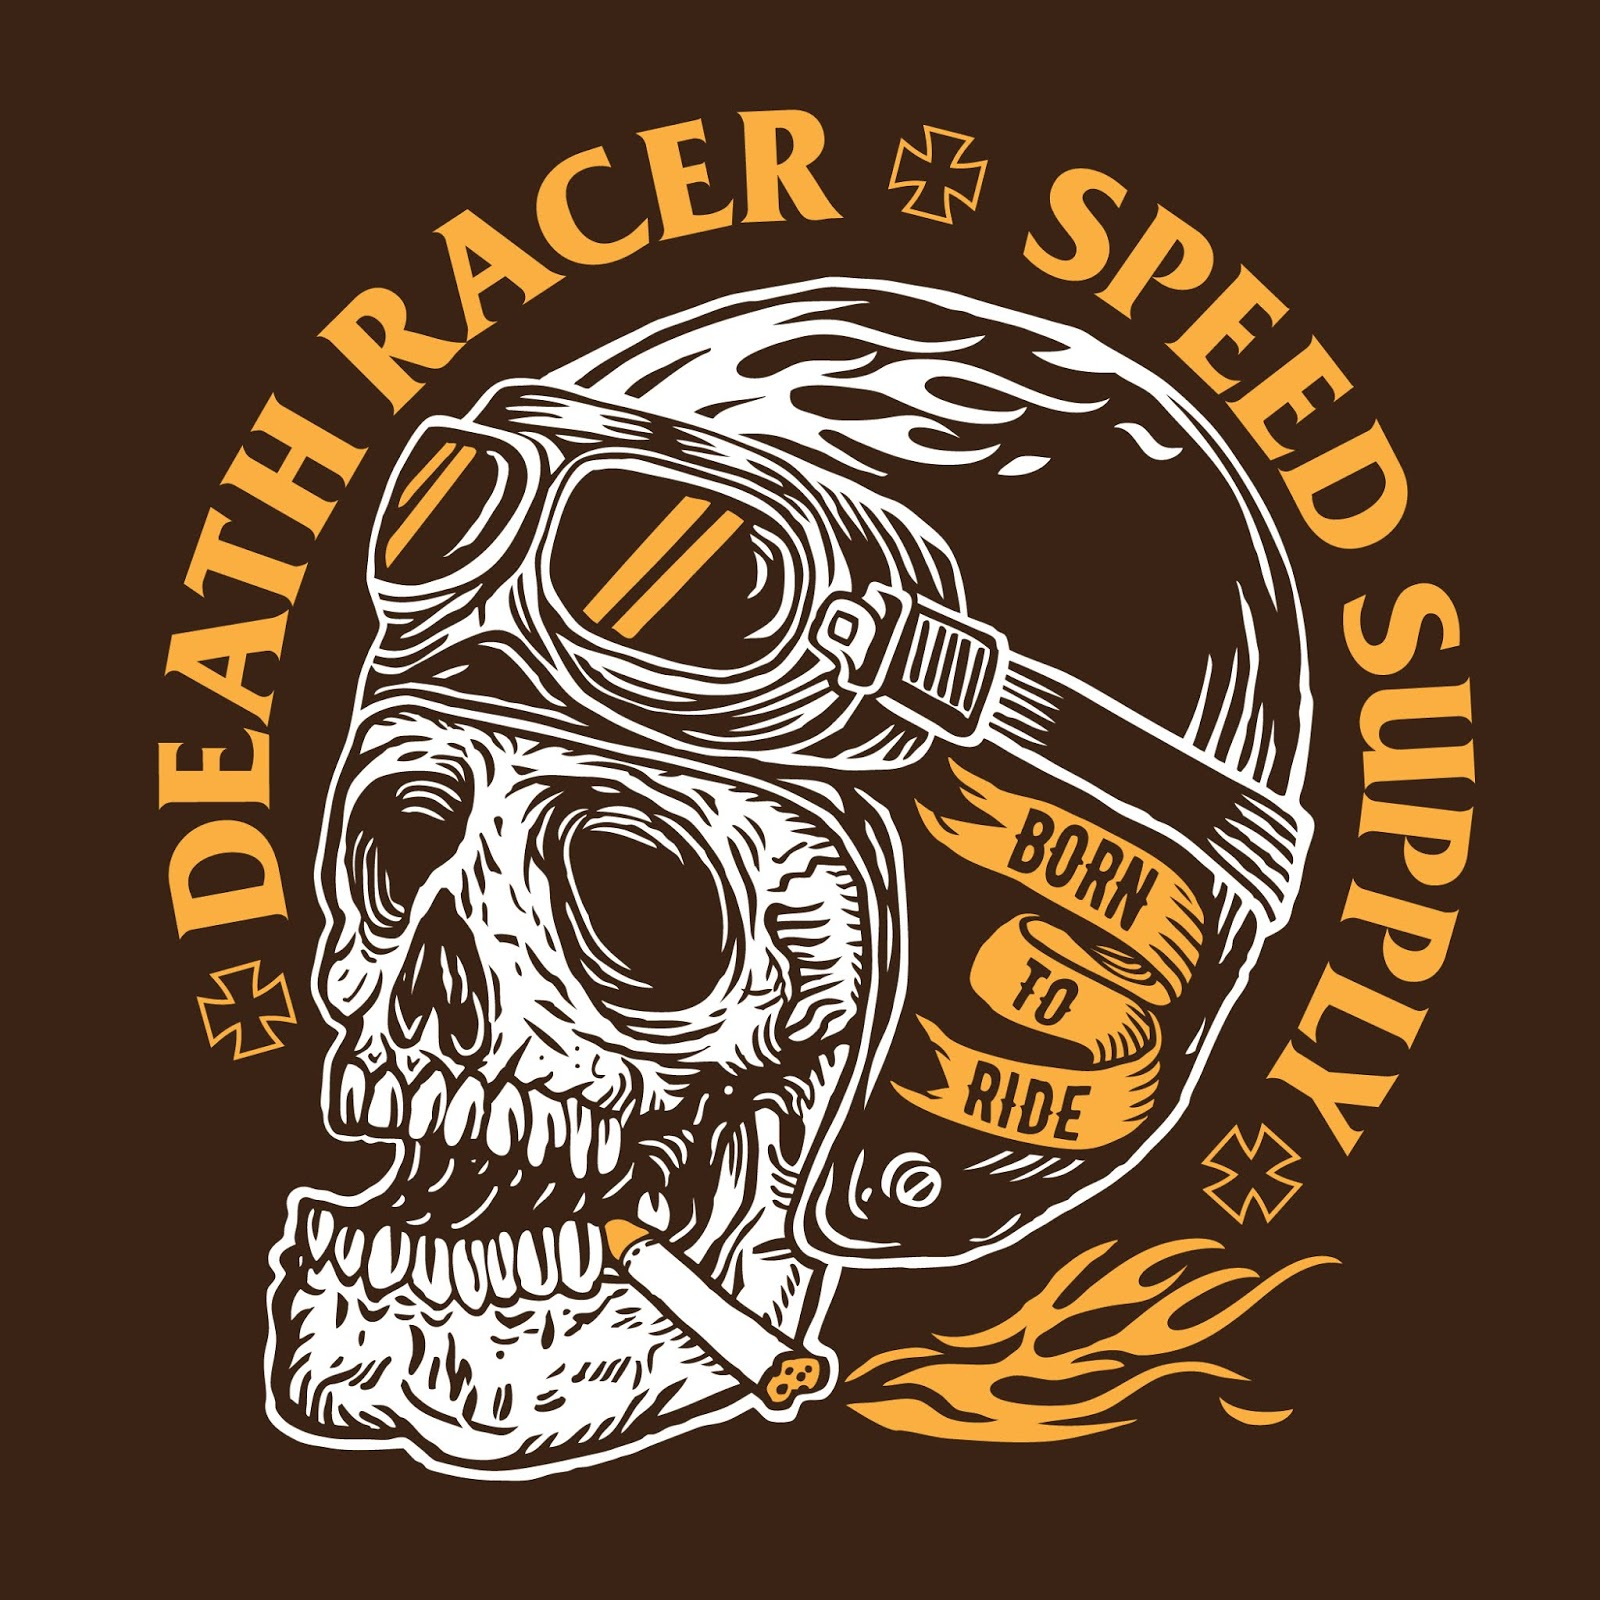 Death Racer Free Download Vector CDR, AI, EPS and PNG Formats